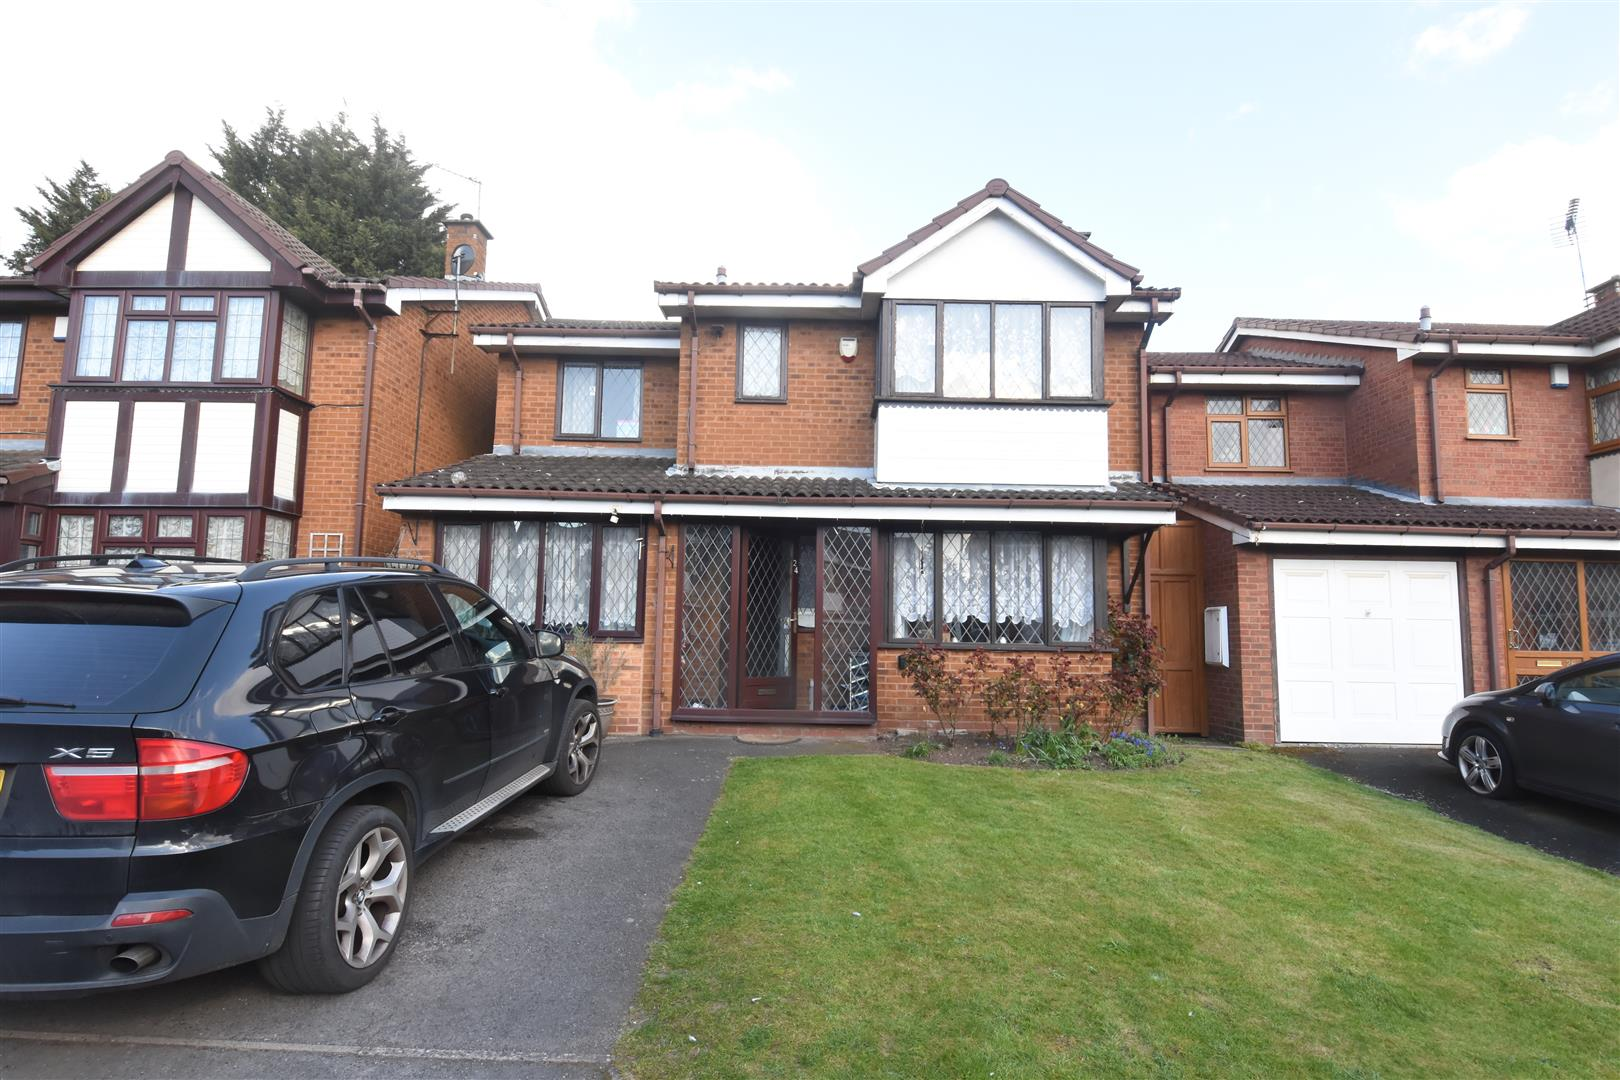 4 bed house for sale in Johnson Close, Hodge Hill, Birmingham, B8